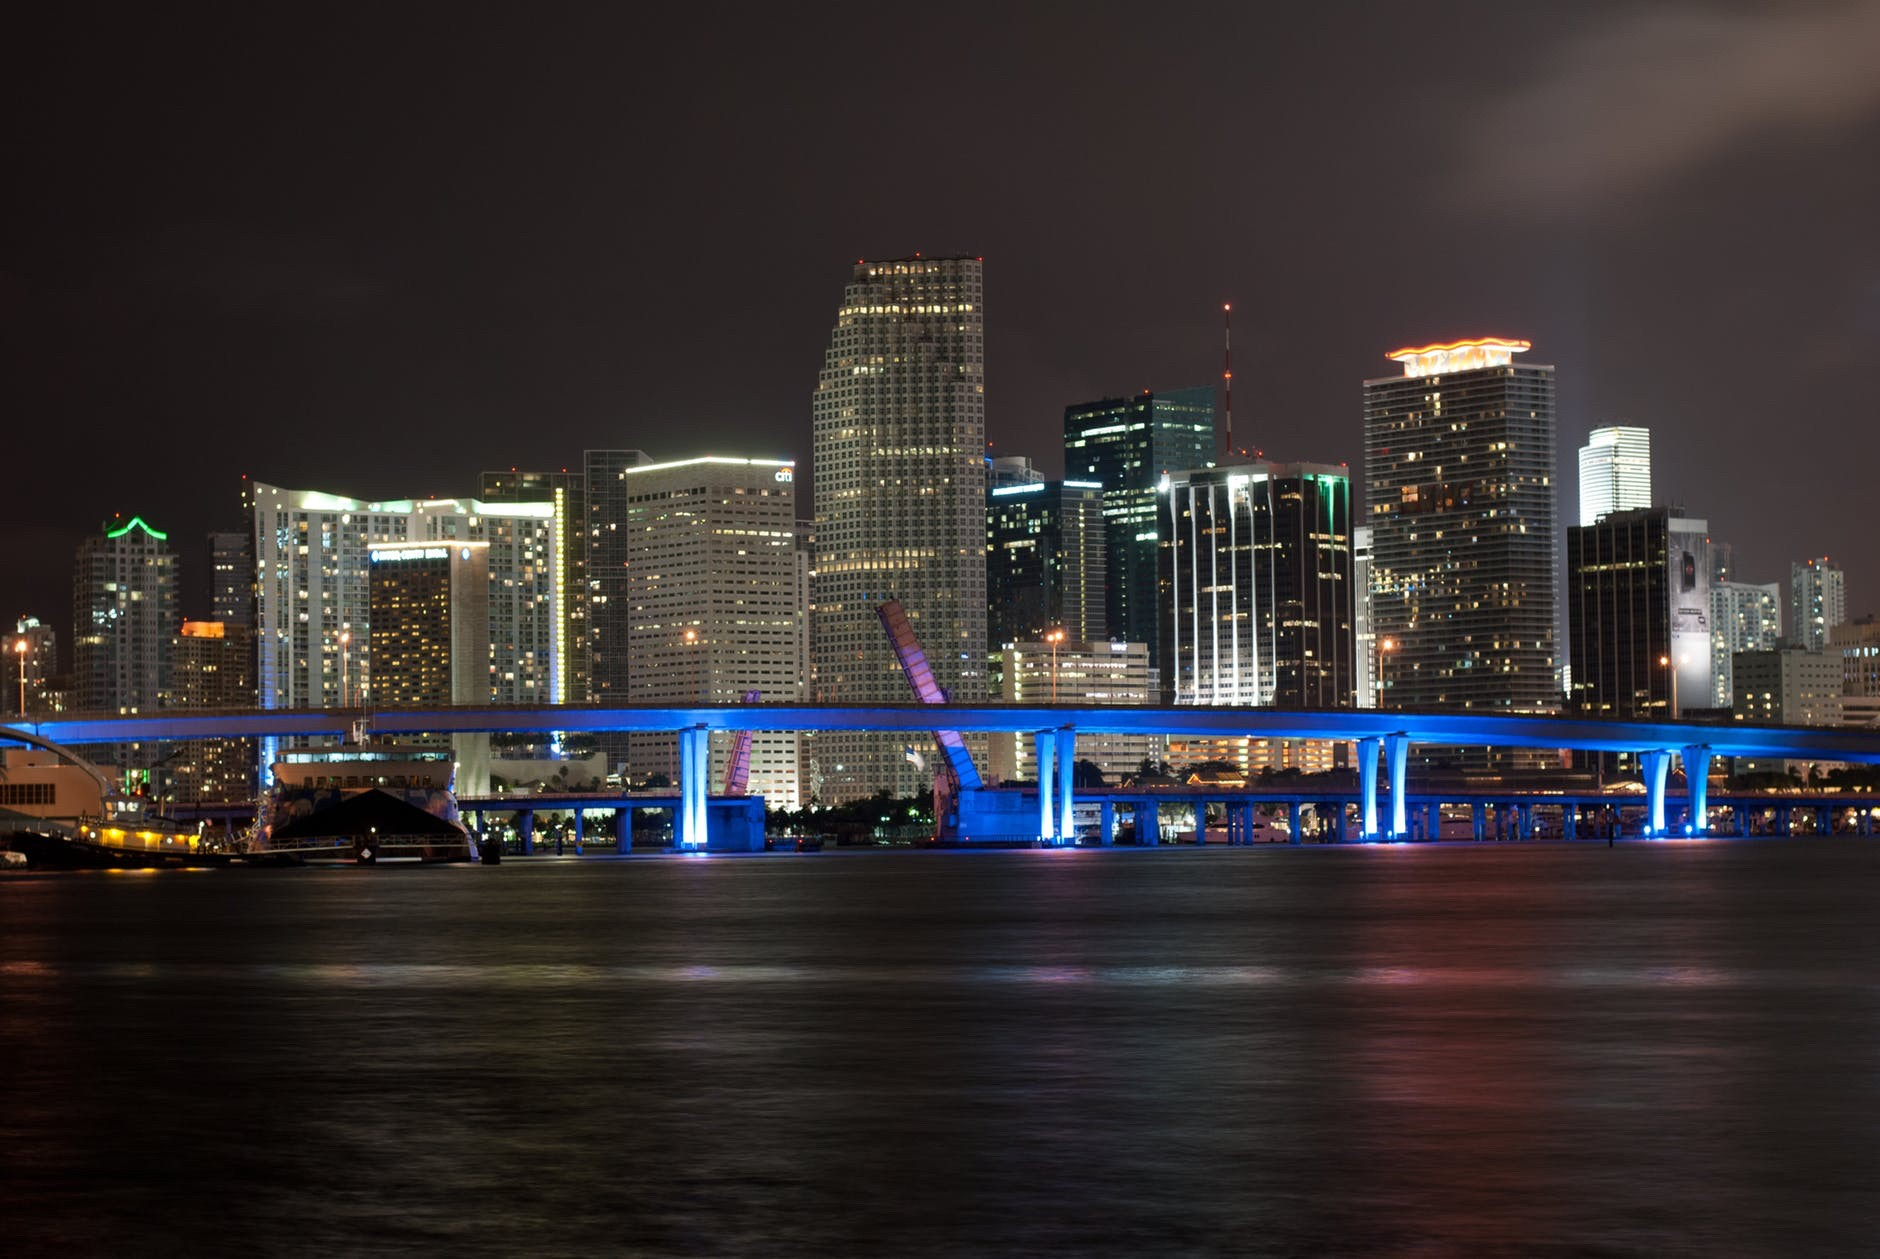 Flight Deal Round Trip From New York Area to Miami Area #newyork #miami #extendedweekend